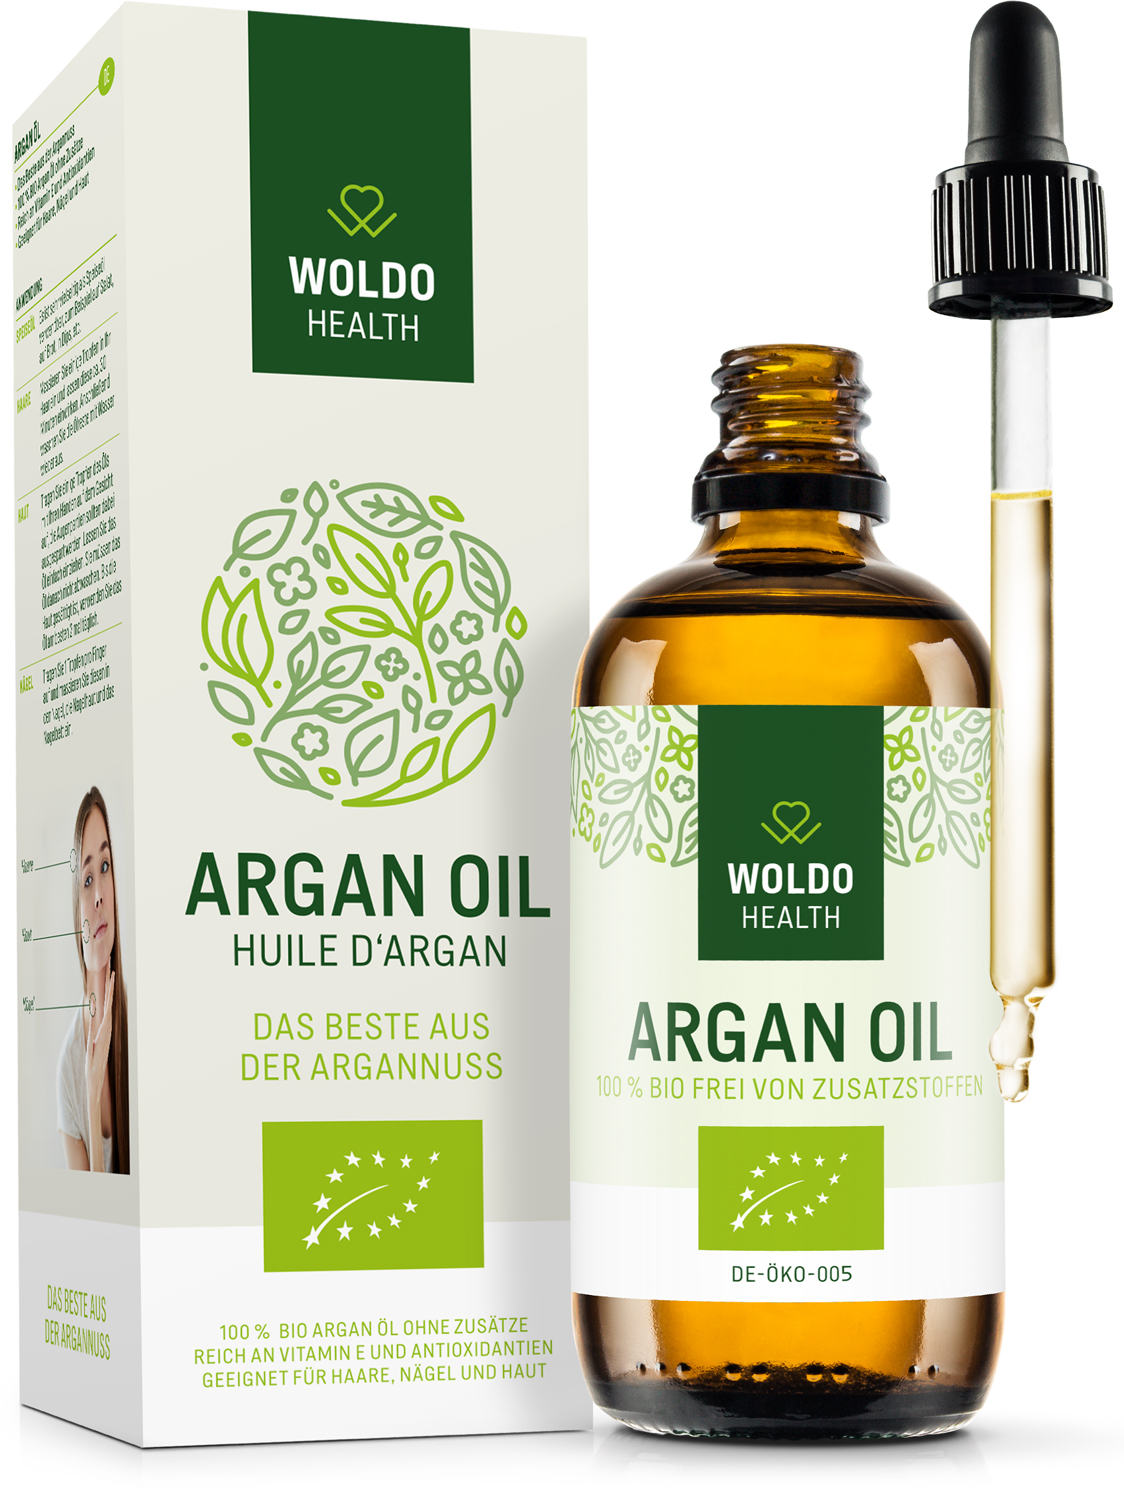 woldohealth-argan-oil-bio-pipette-2a